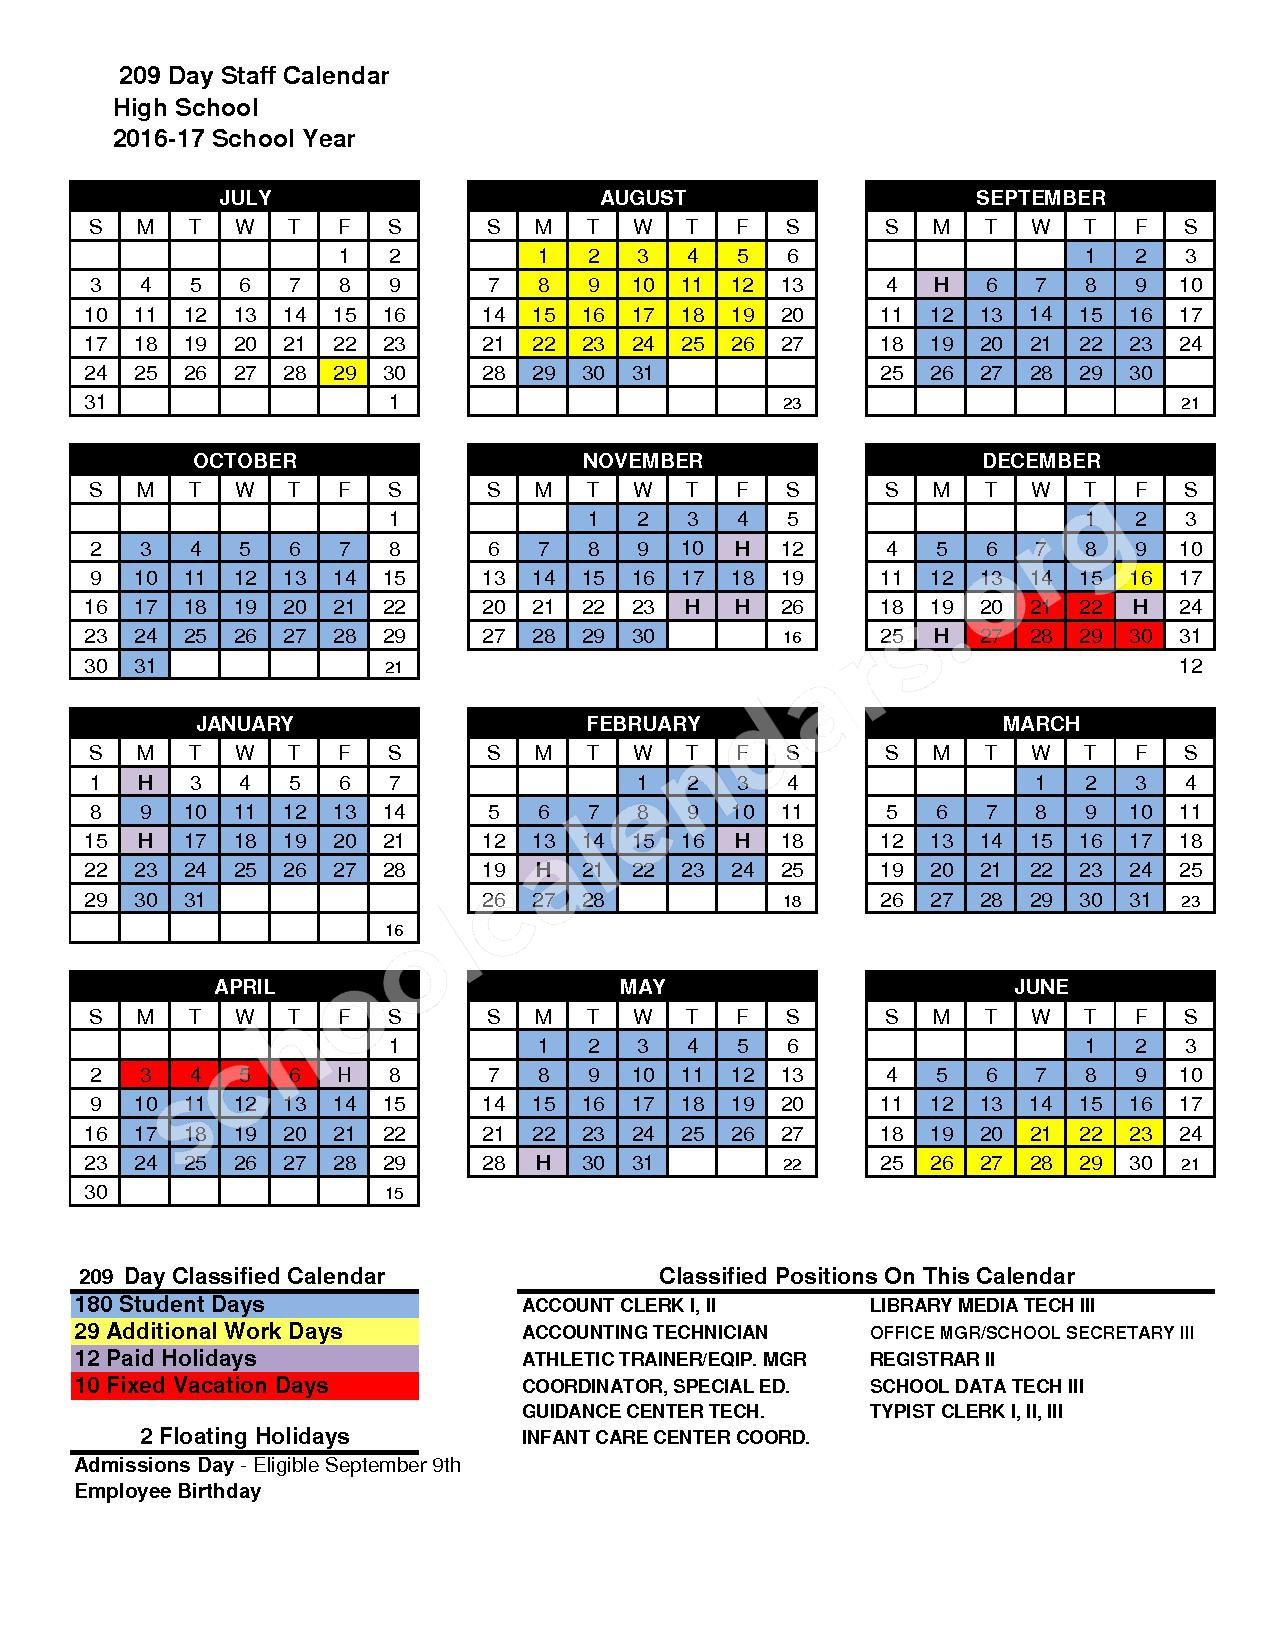 2016 - 2017 High School Staff District Calendar – San Marcos Unified School District – page 1